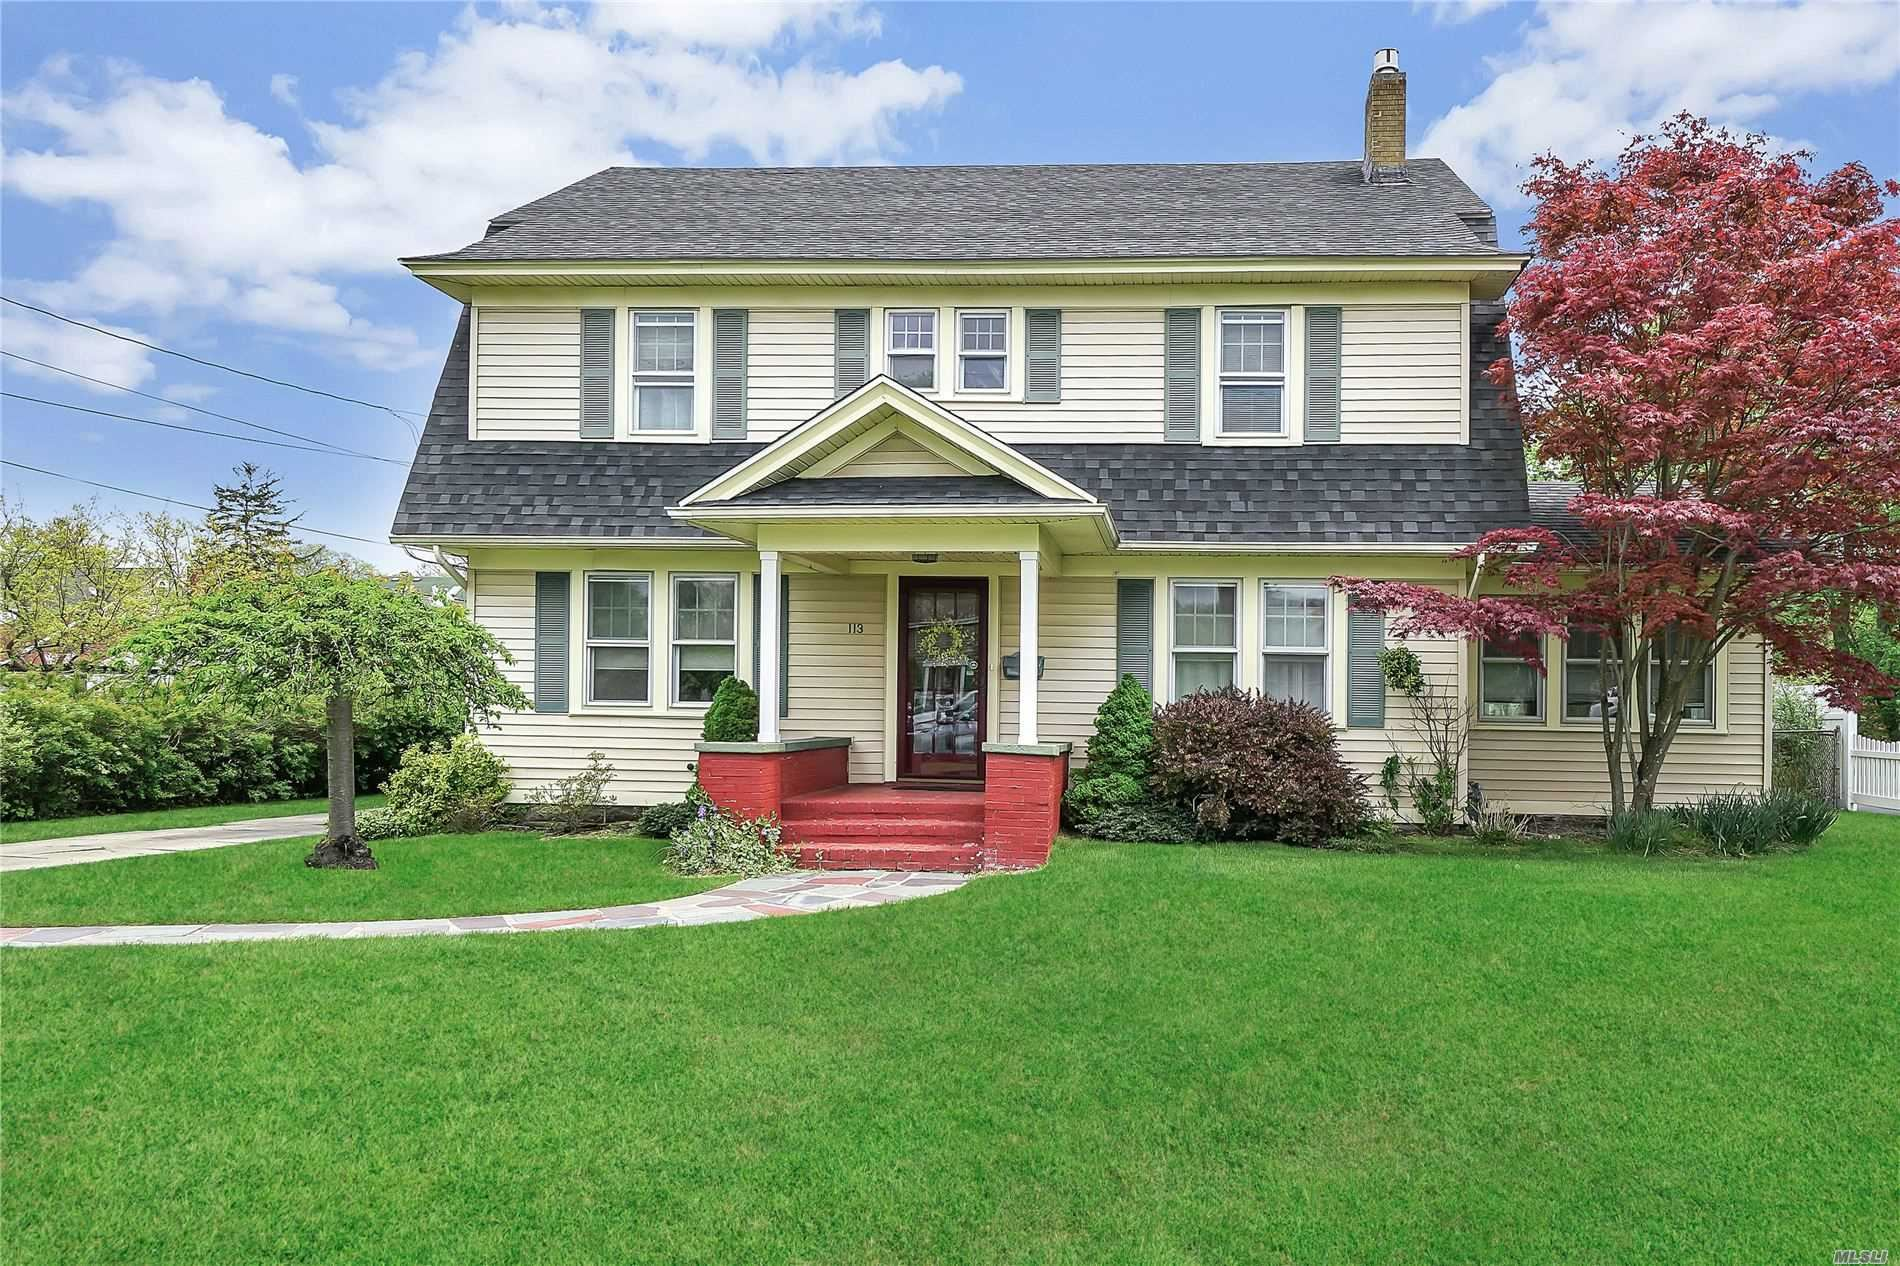 113 Roe Ave, Patchogue, NY 11772 - MLS#: 3214702